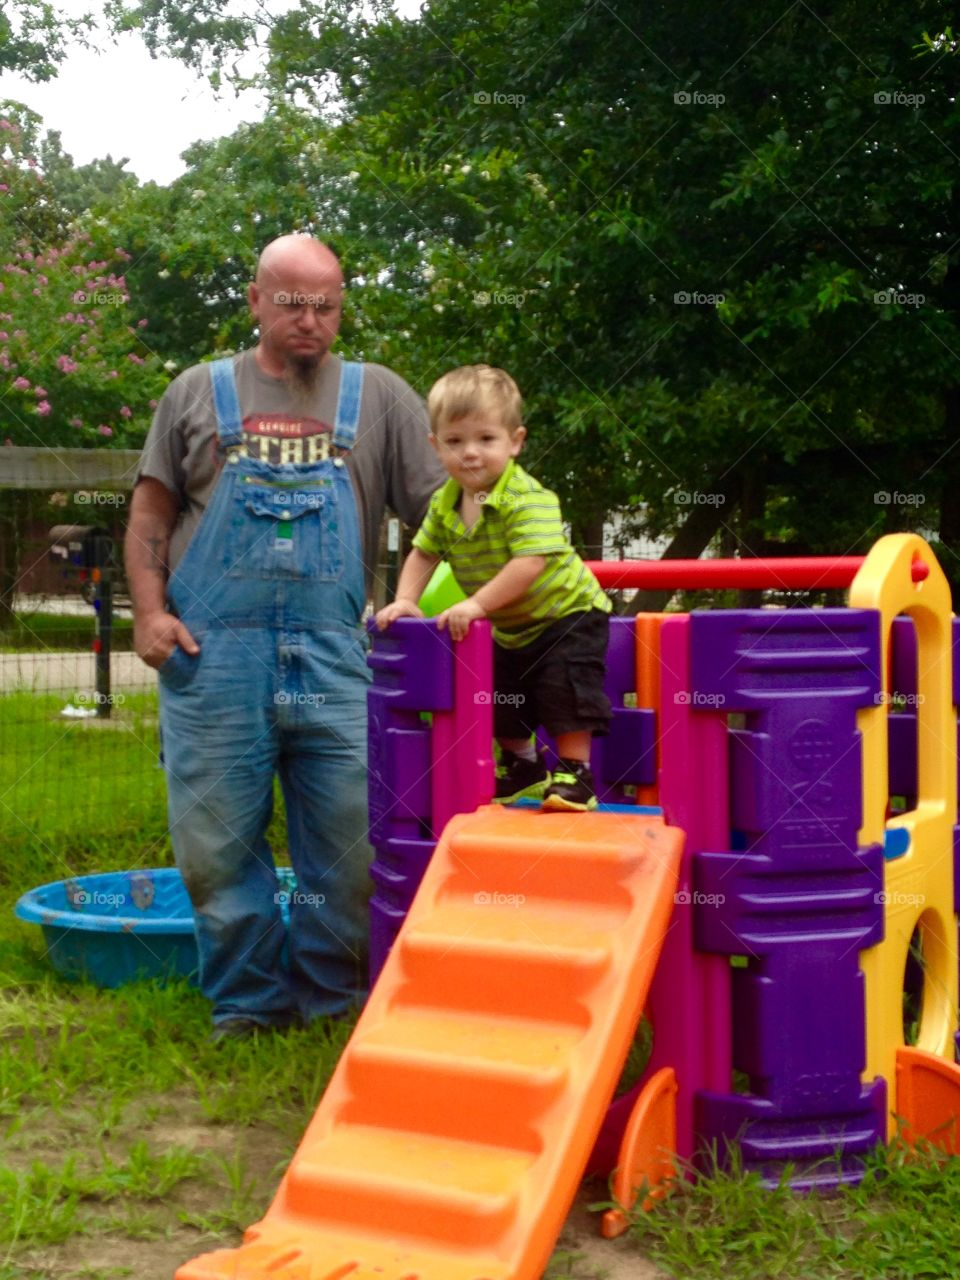 Pawpaw helping grandson playing on a plastic toys. Pawpaw wearing  denim overalls